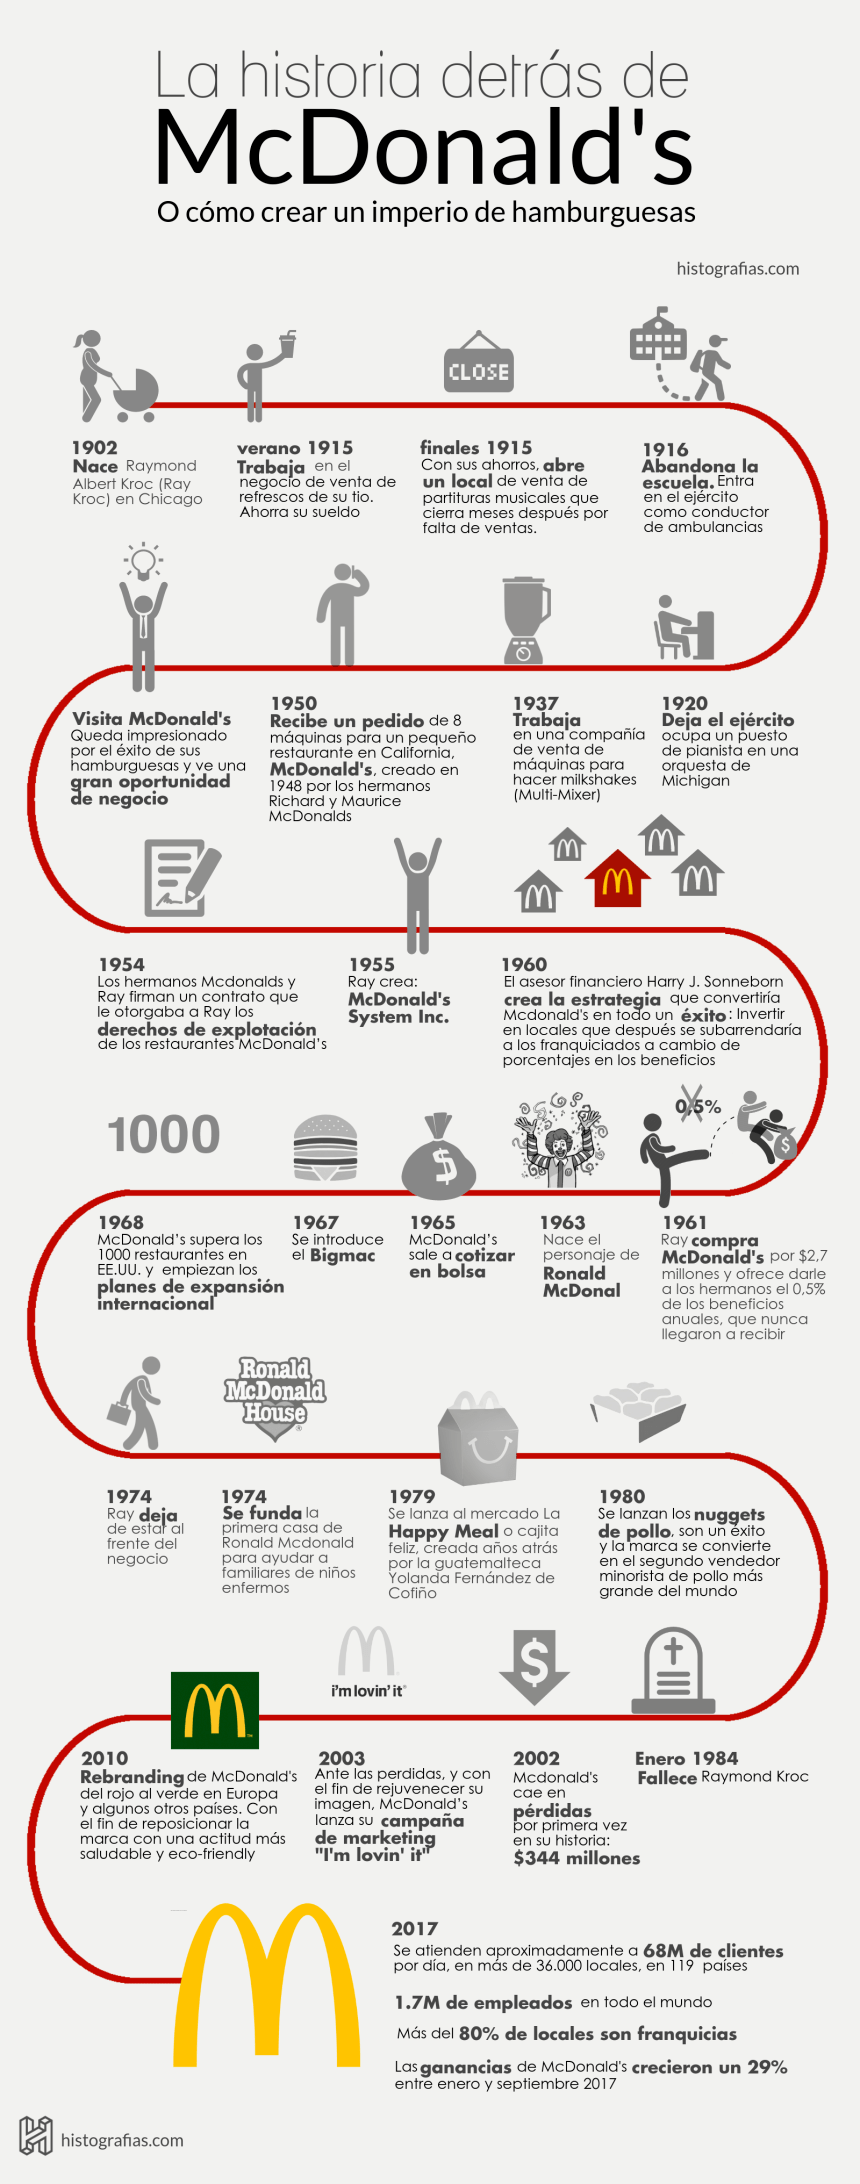 Historia de McDonald's #infografia #infographic #marketing